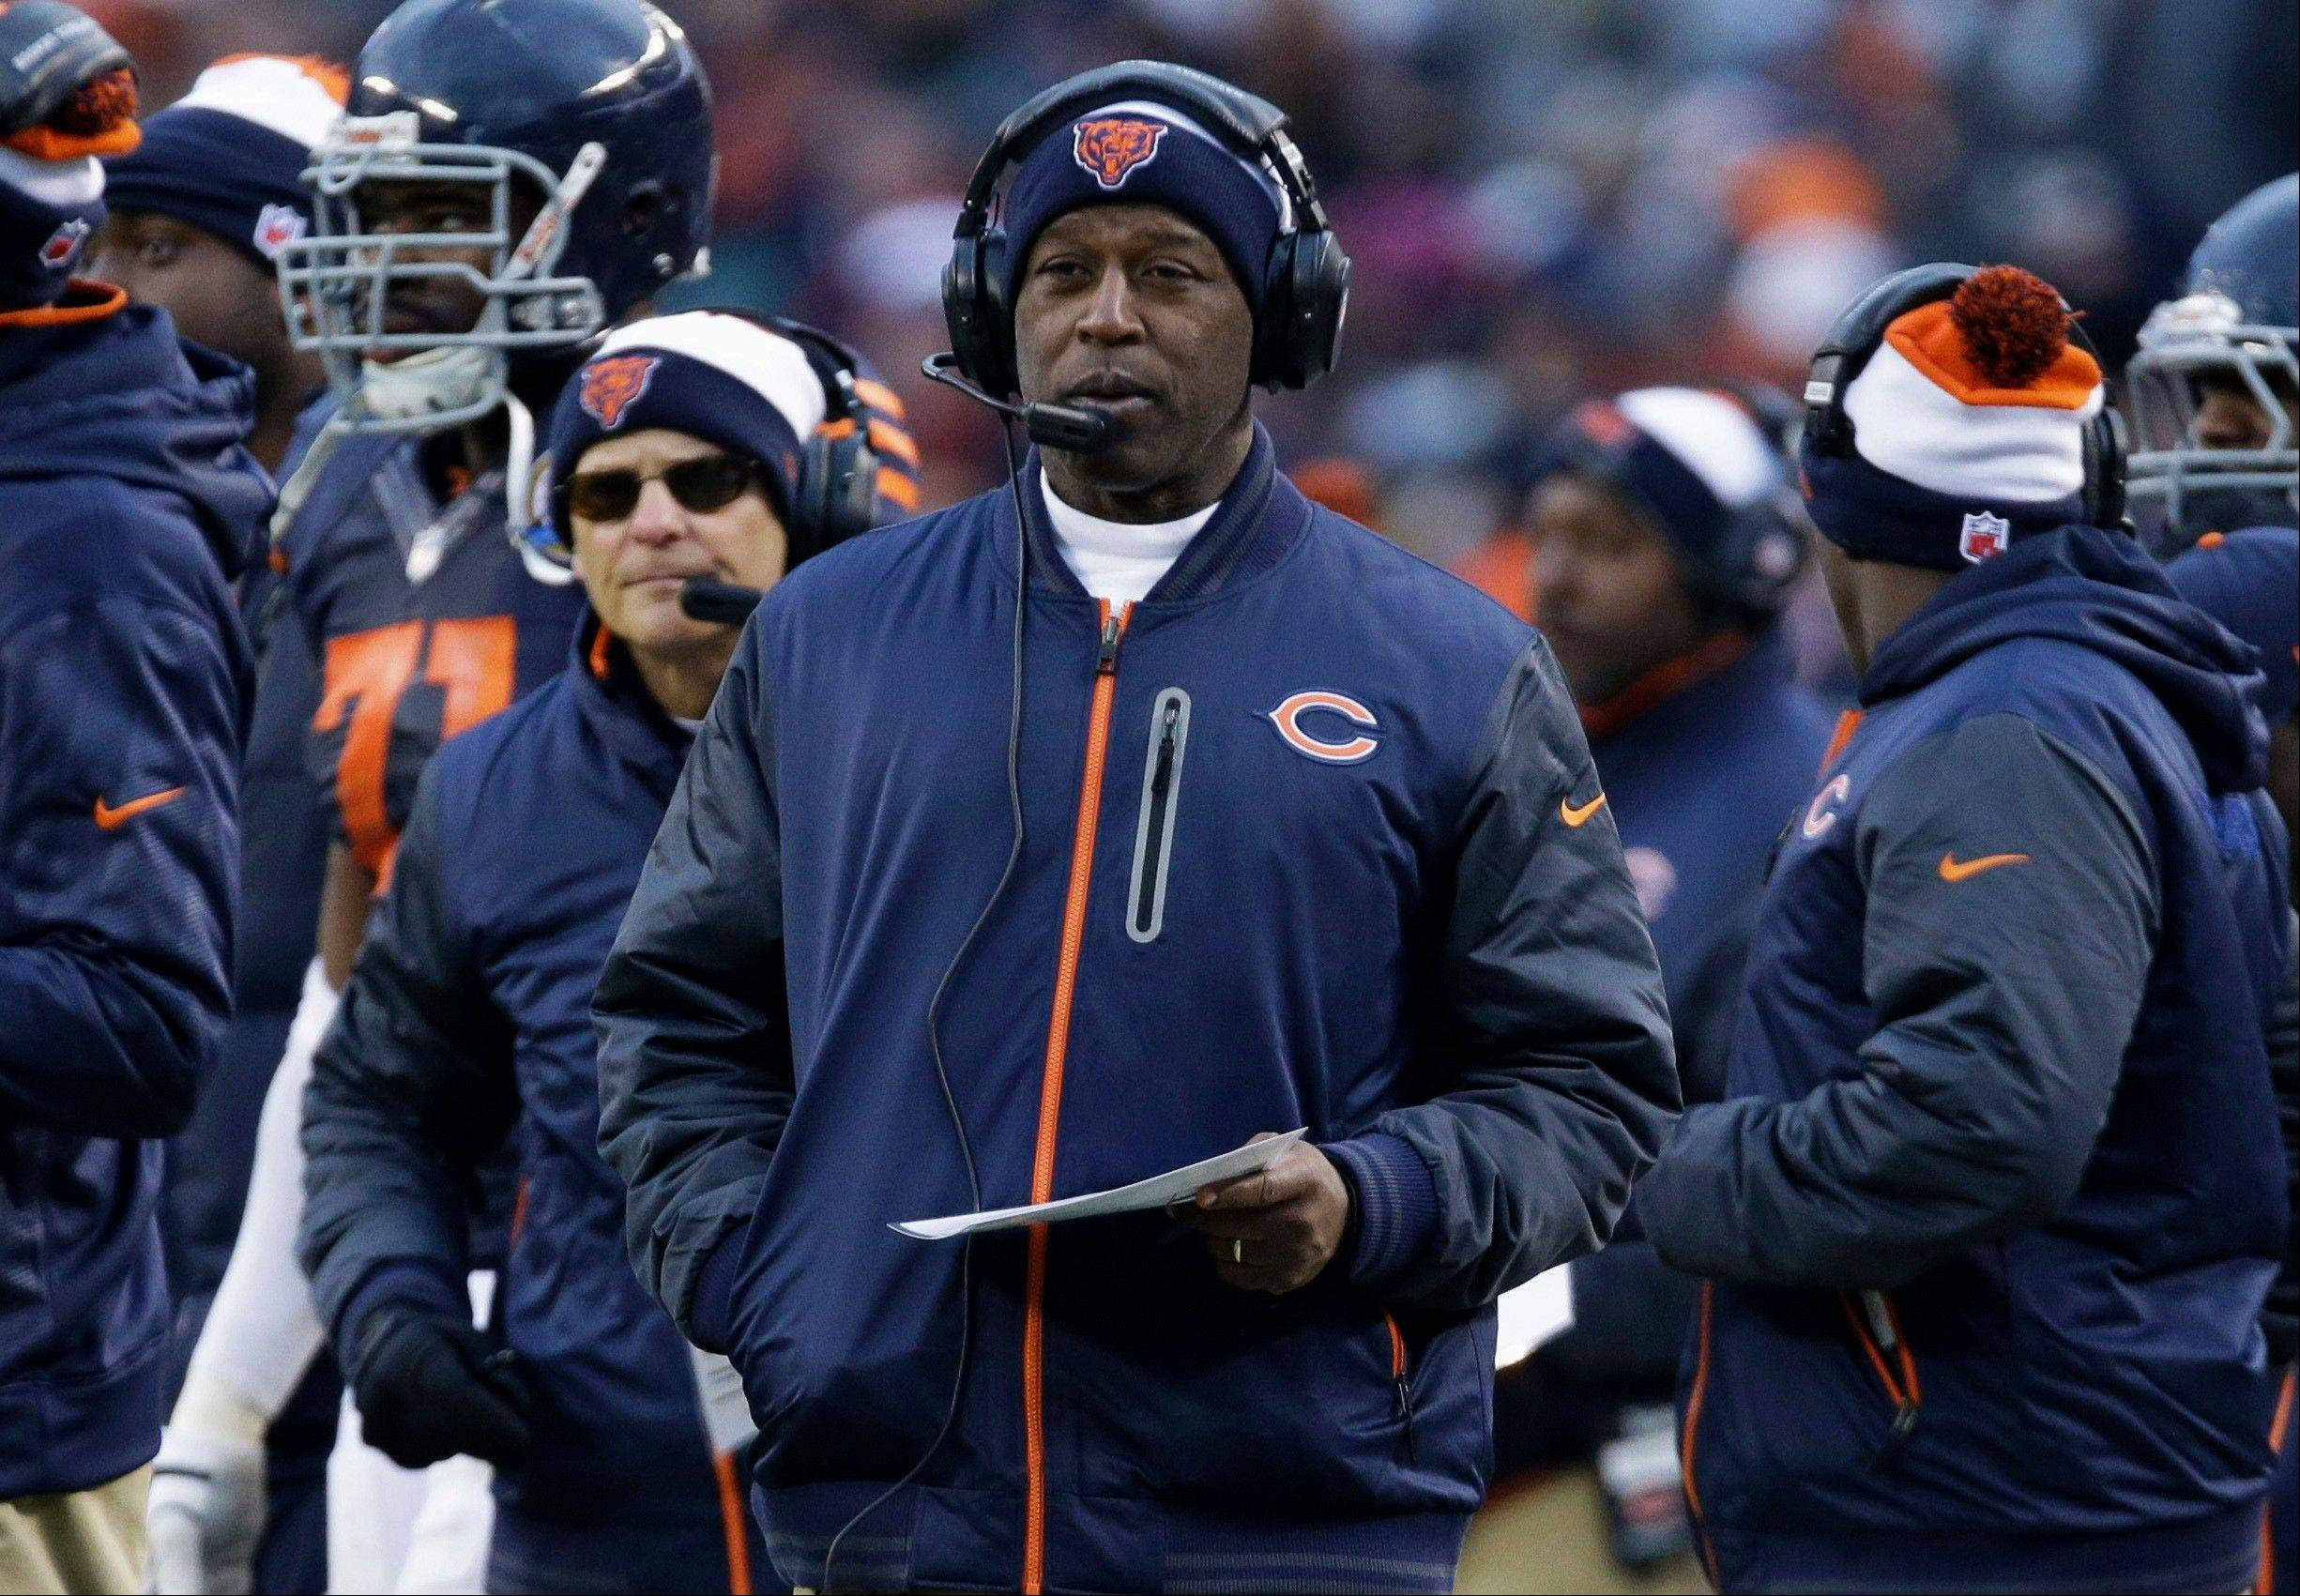 Chicago Bears head coach Lovie Smith watches the action against the Green Bay Packers in the second half of an NFL football game in Chicago, Sunday, Dec. 16, 2012. The Packers won 21-13 to clinch the NFC North division title.